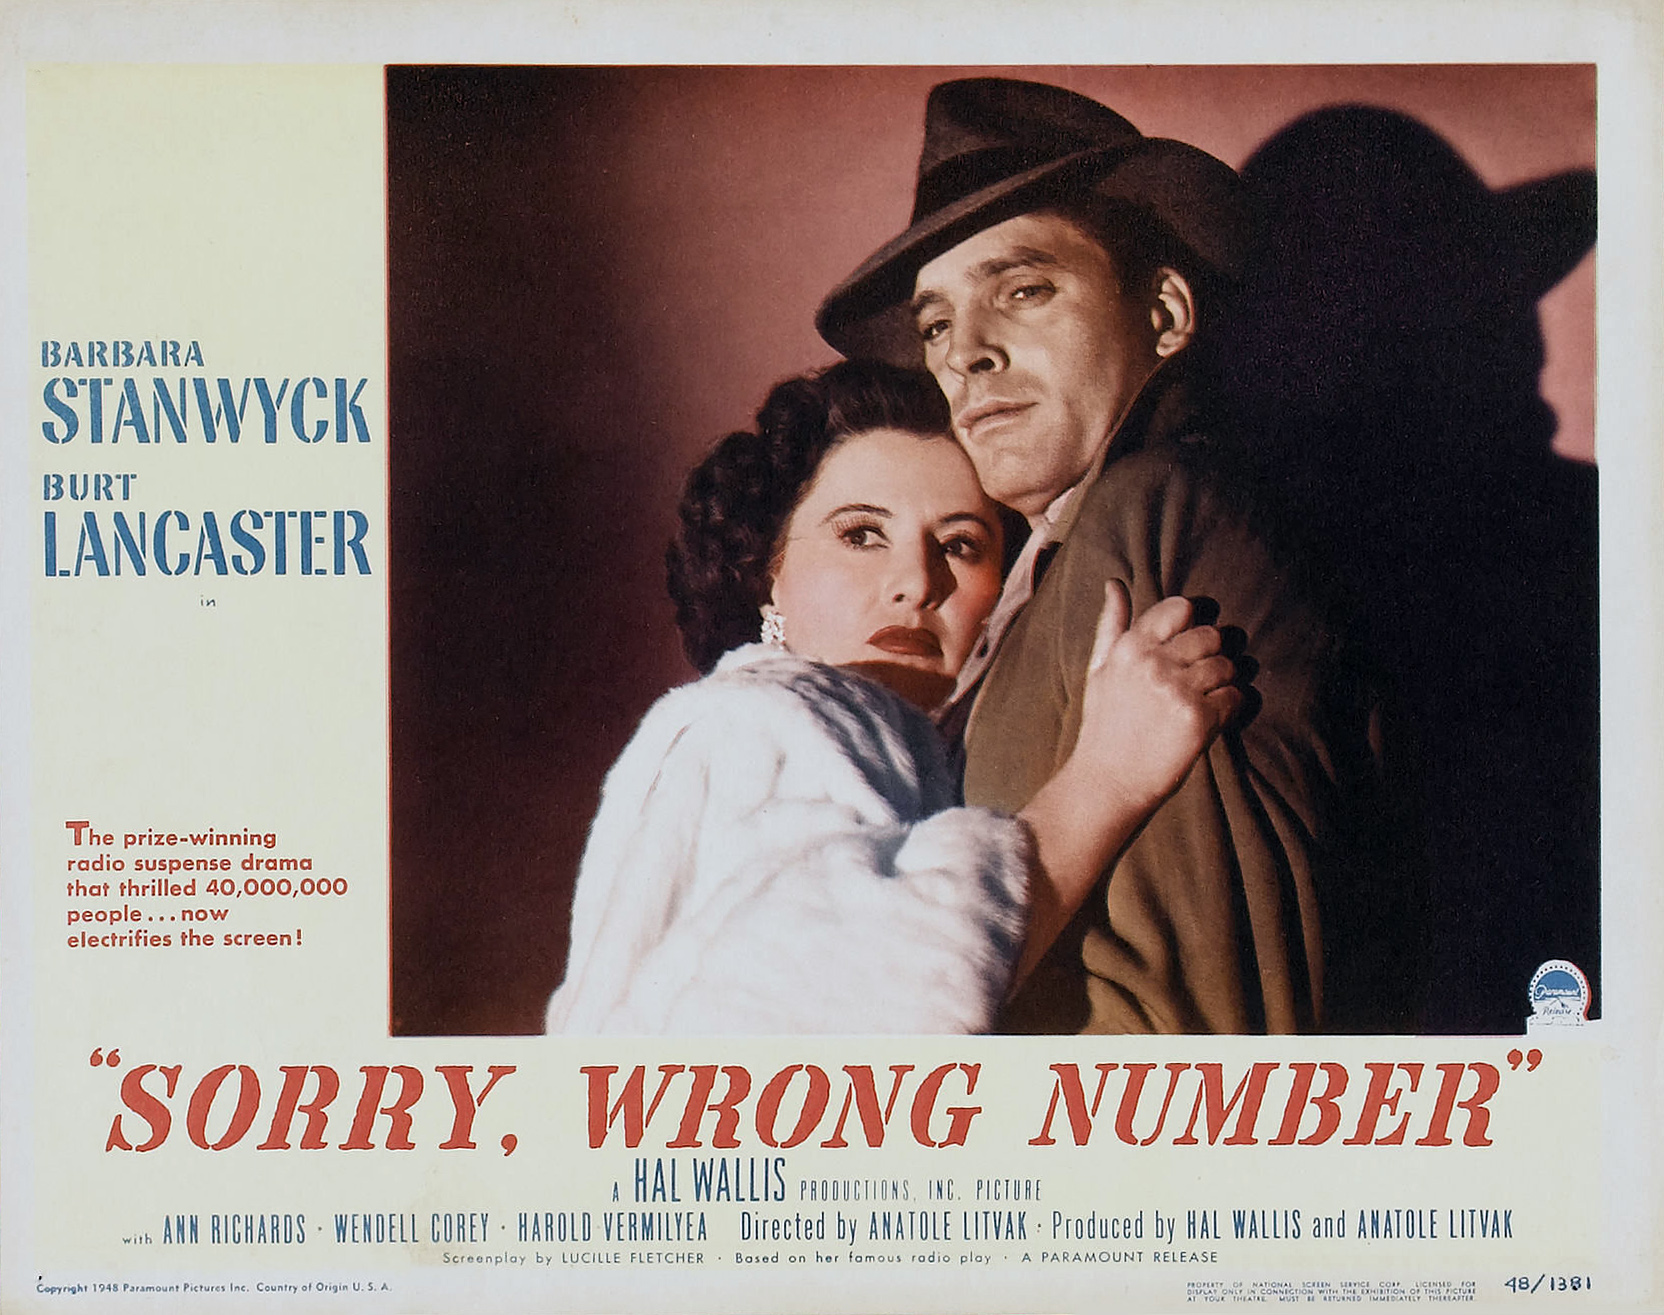 Barbara Stanwyck and Burt Lancaster pose for a misleading poster.